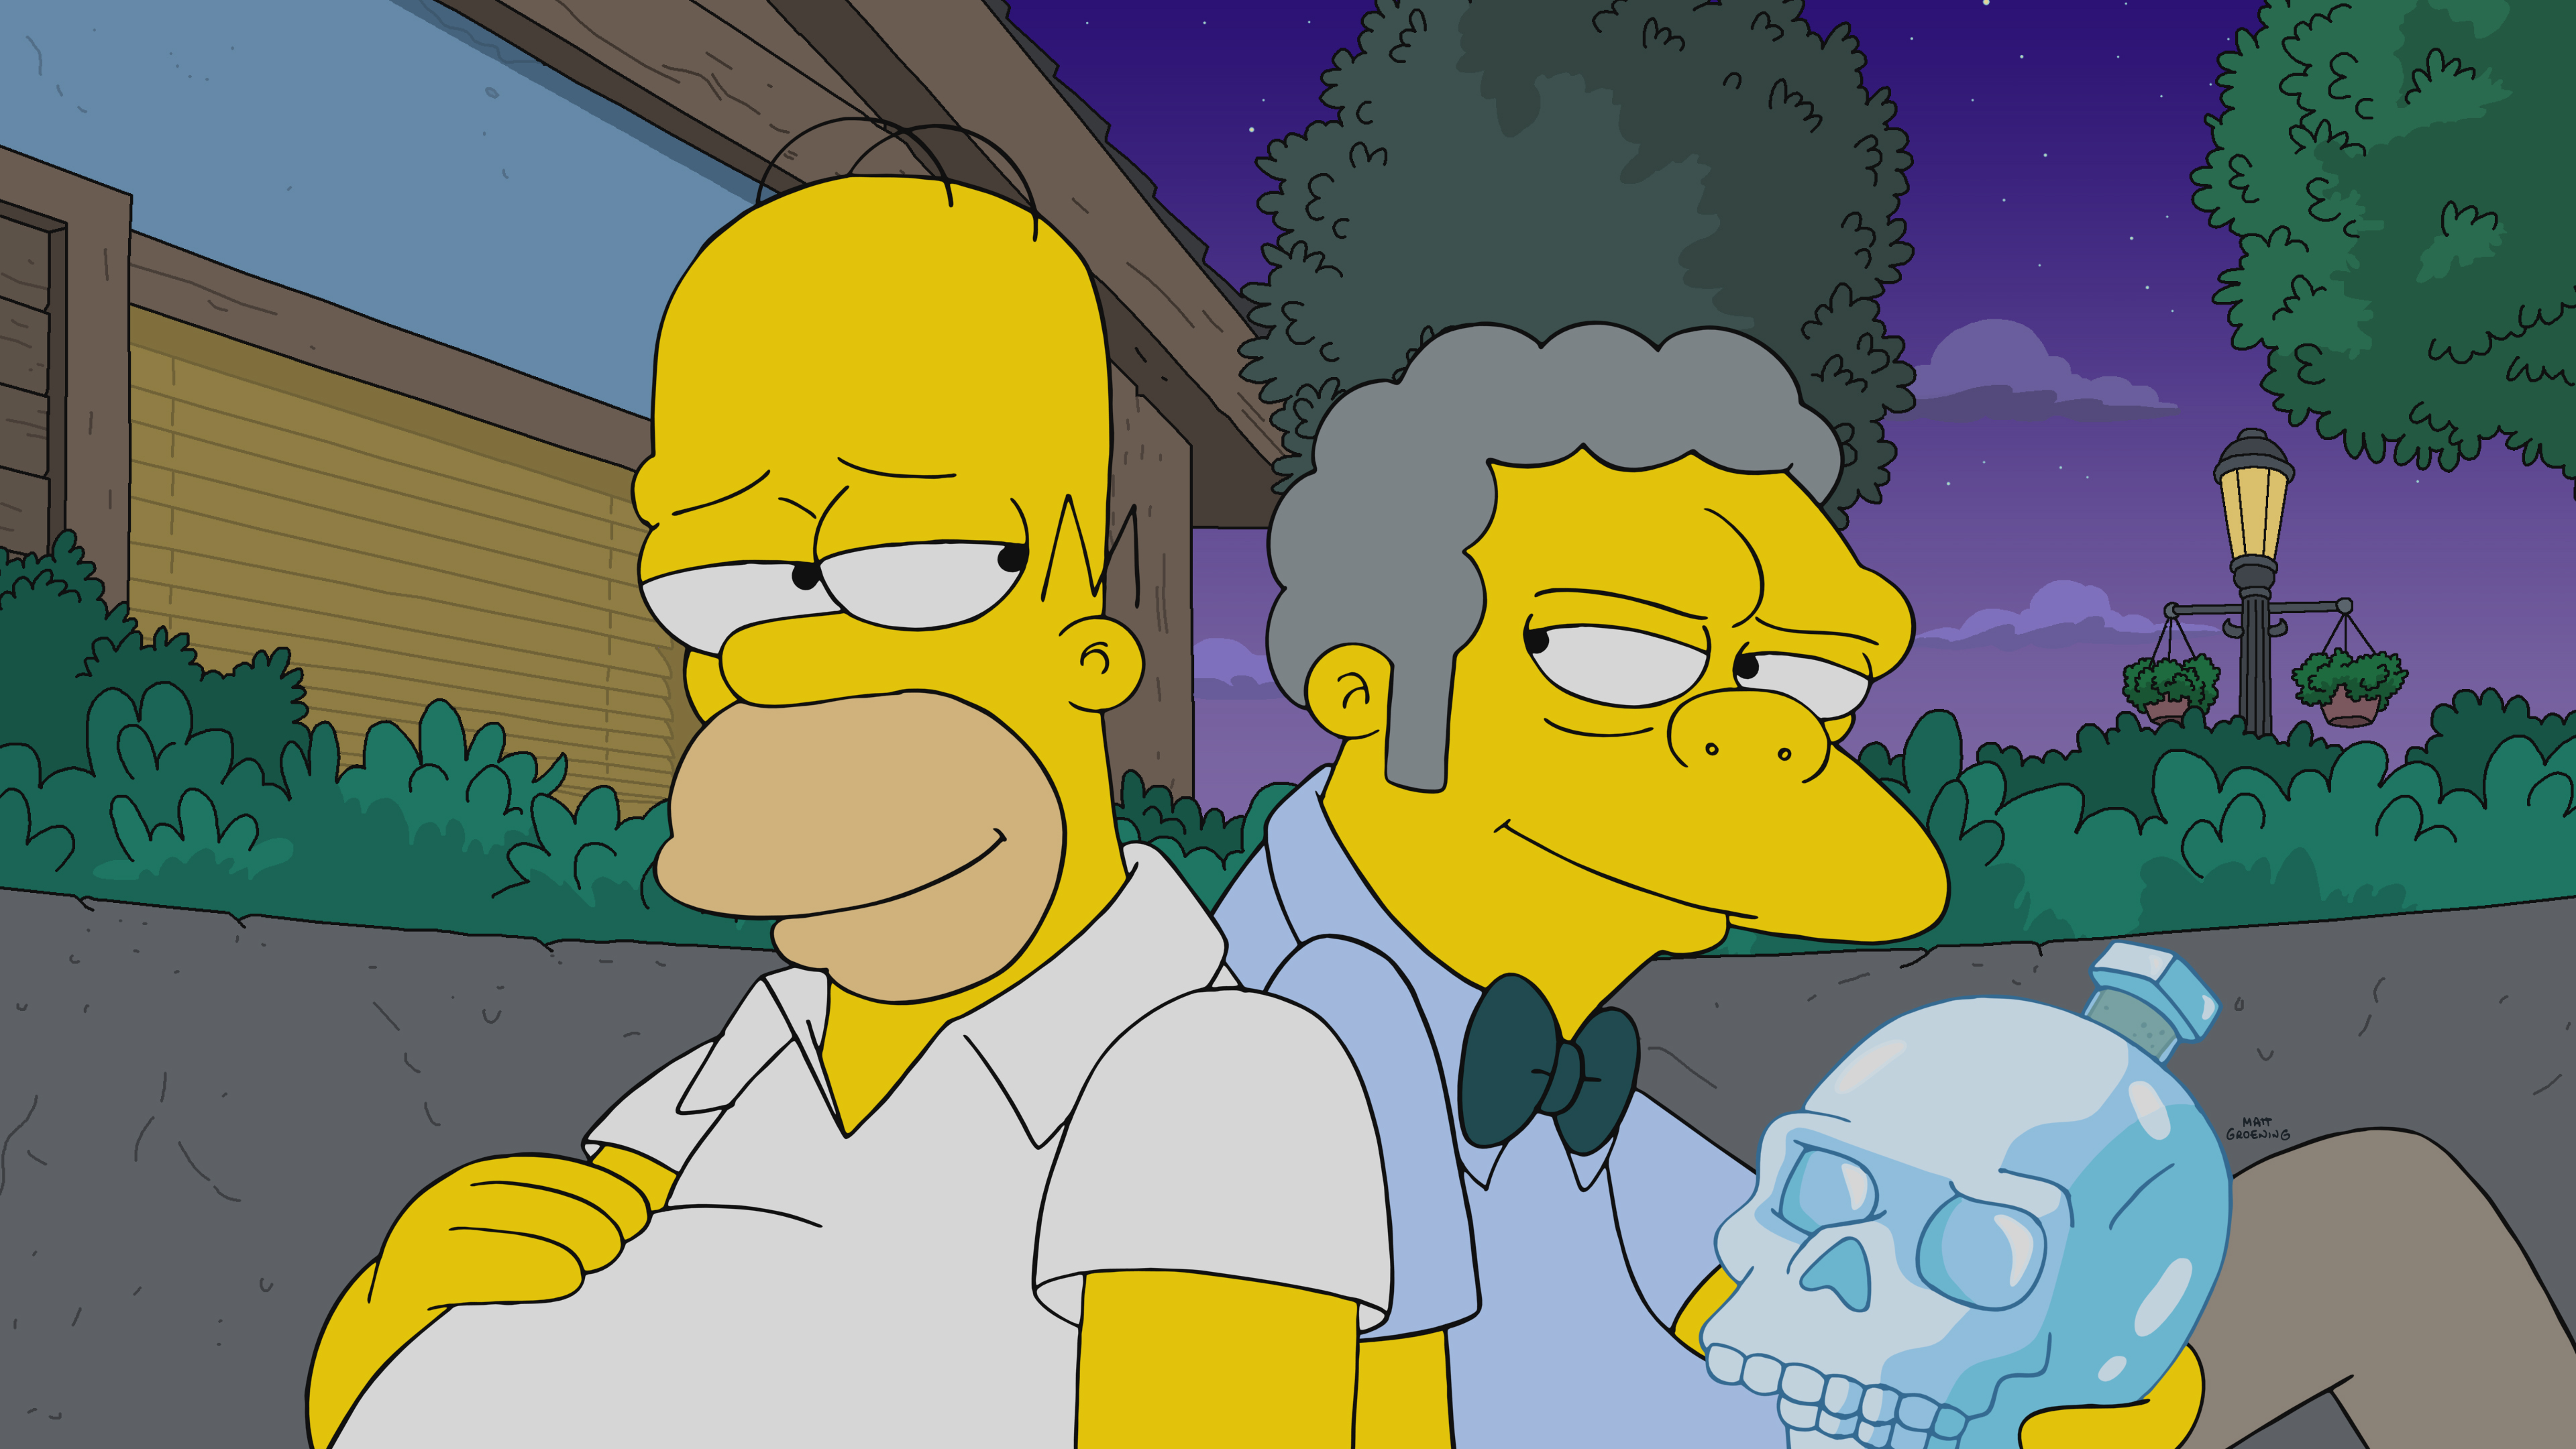 THE SIMPSONS: After Moe breaks their most sacred rule, a secret society of bartenders seeks ultimate vengeance on Homer and his friends in the ÒThe Last BarfighterÓ season finale episode of THE SIMPSONS airing Sunday, May 23 (8:00-8:30 PM ET/PT) on FOX. THE SIMPSONS © 2021 by 20th Television.